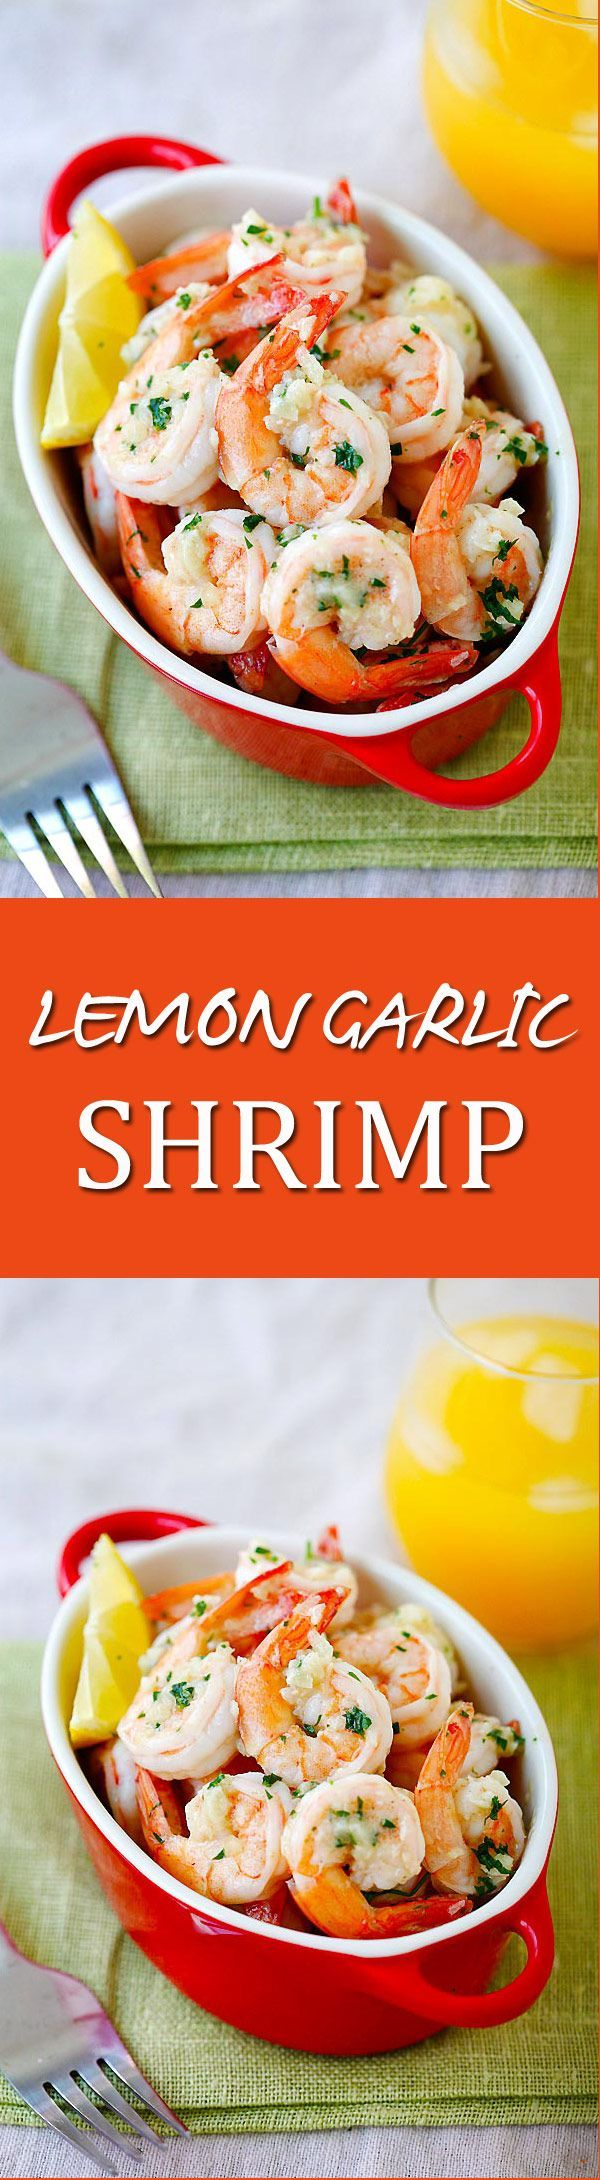 Lemon Garlic Shrimp – easiest and best shrimp recipe with lemon, garlic, butter, and shrimp, all ready in 20 mins. Perfect as is or with pasta | http://rasamalaysia.com